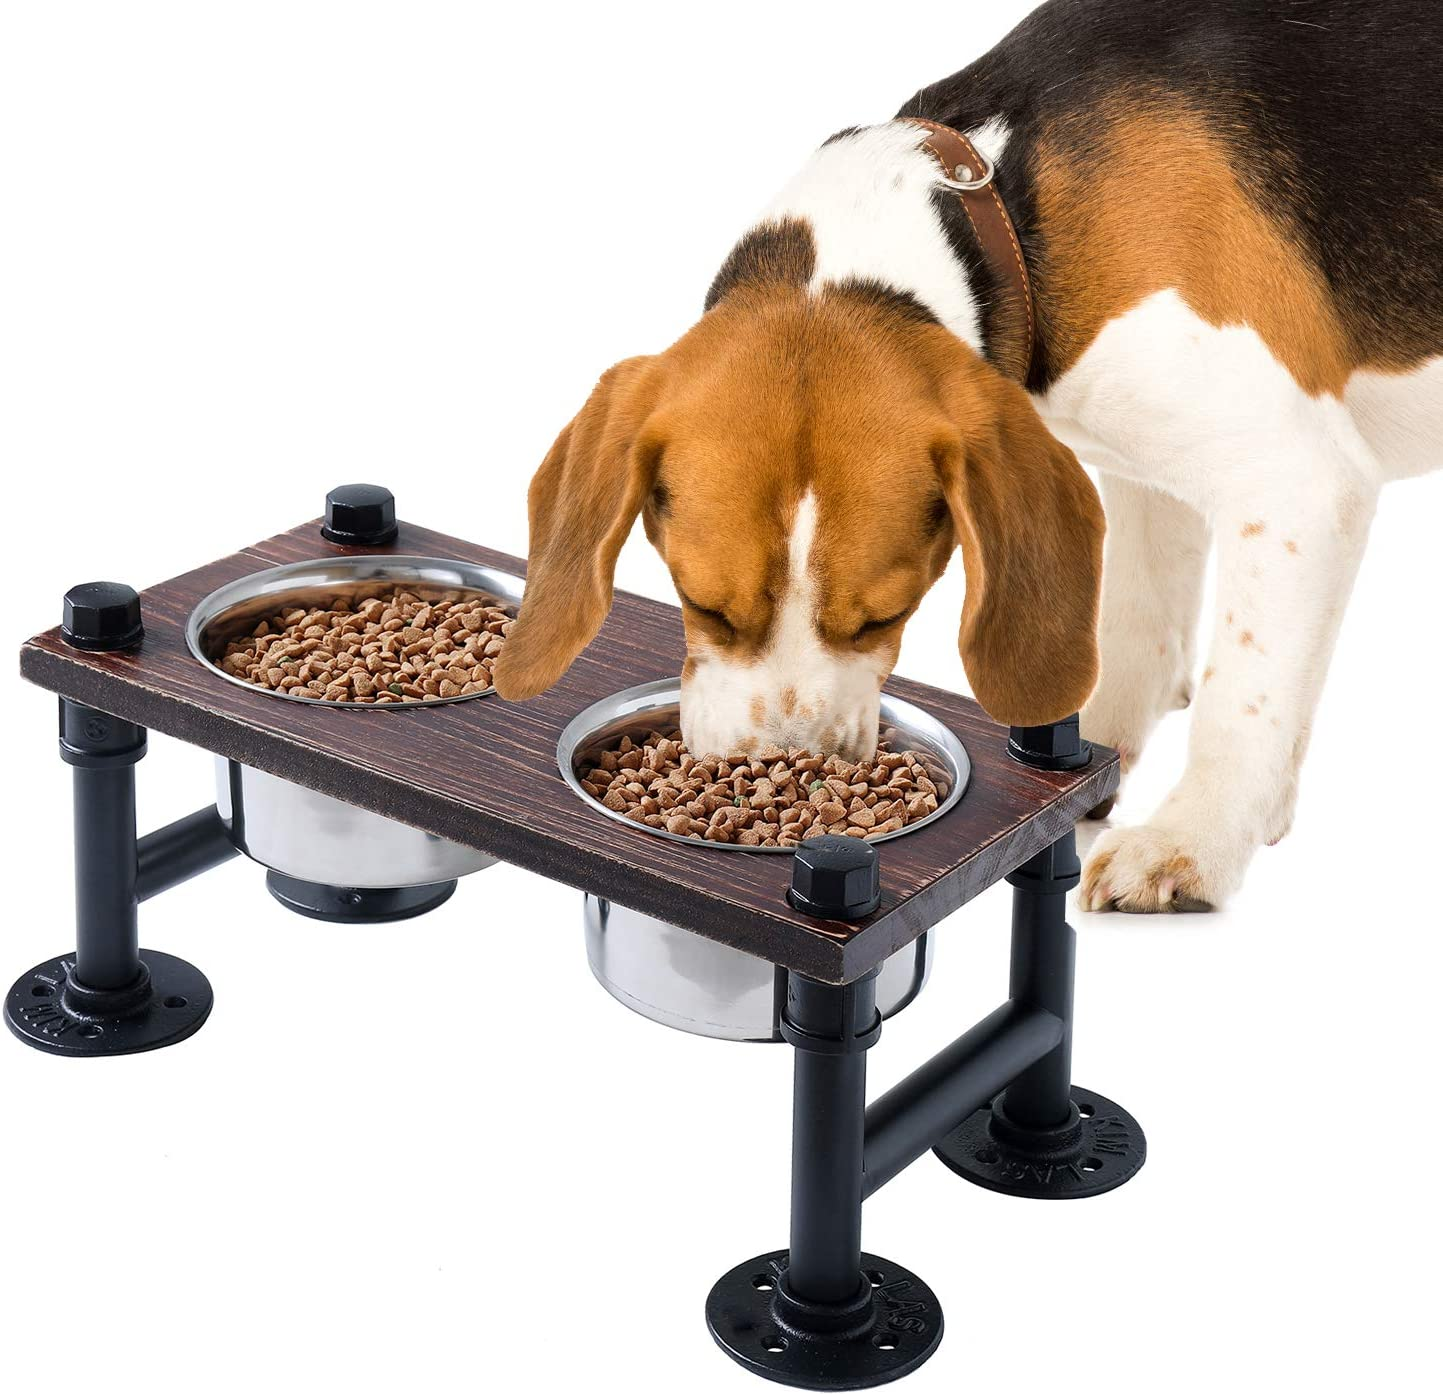 """WELLAND Elevated Dog Bowls with 2 Stainless Steel Bowls, Farmhouse Style Dog Raised Bowls for Small or Medium Dogs, Dog Feeder with Solid Wood Board & Black Metal Legs, 15.7""""W x 8""""D x 6.7""""H"""